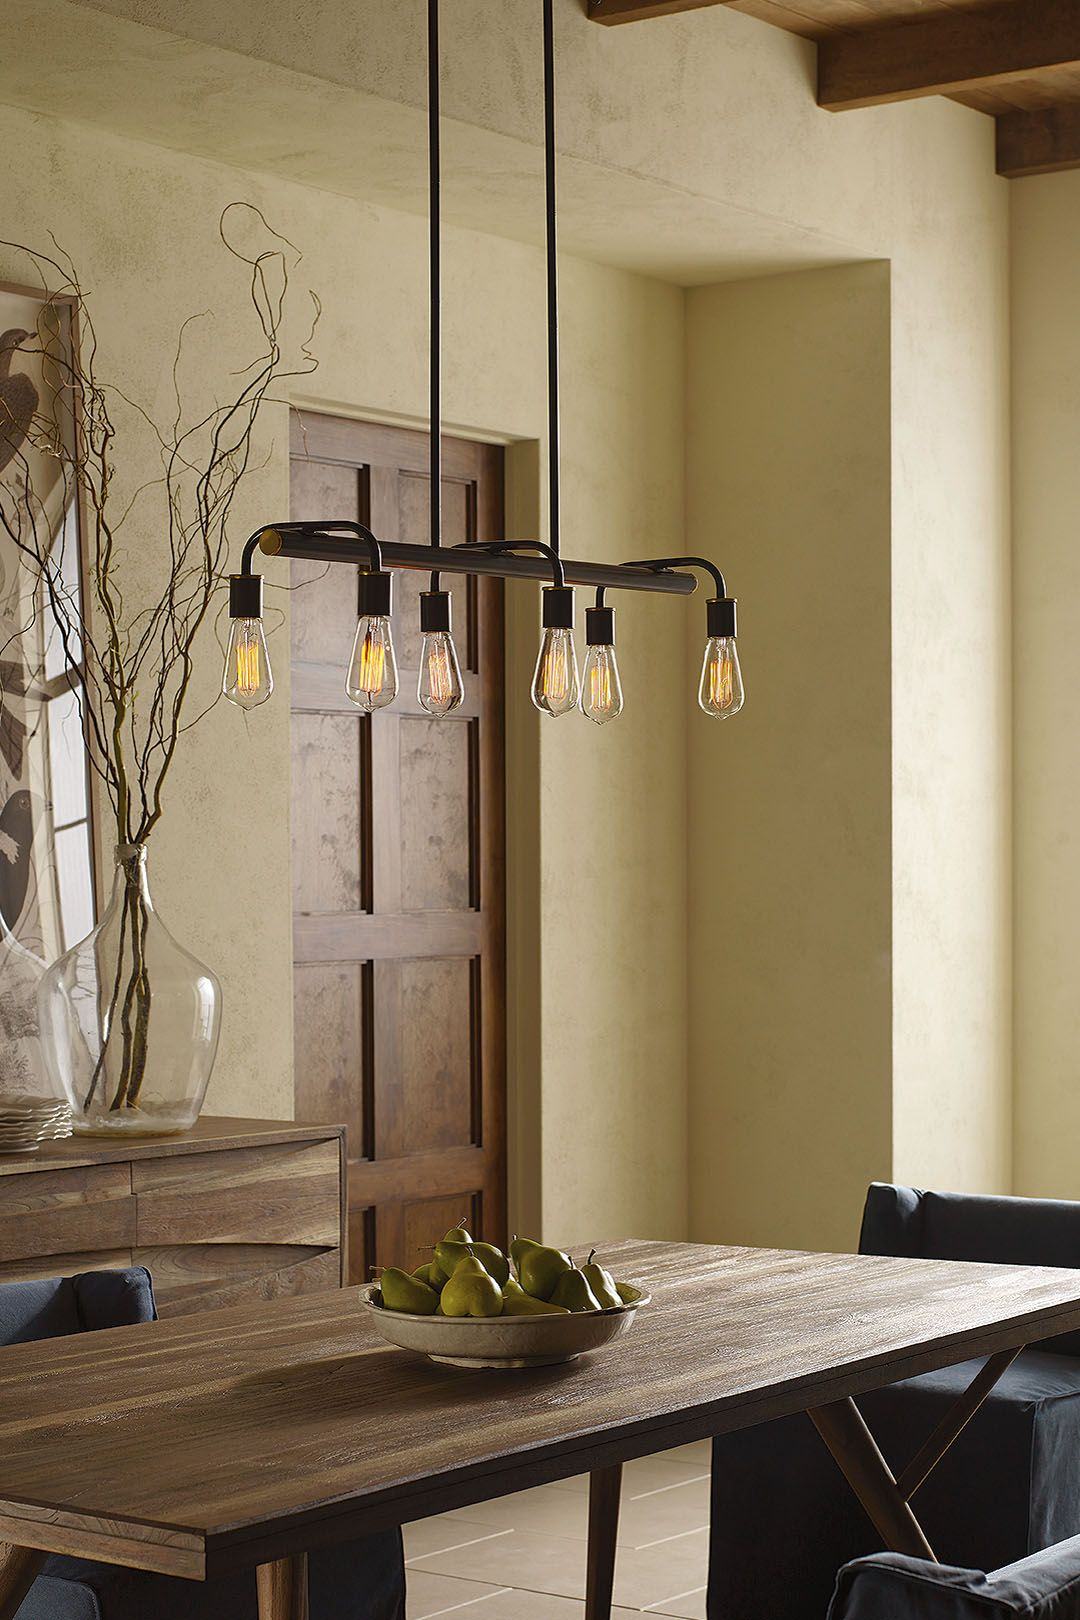 Now Trending Edison Bulbs And Industrial Lighting Styles A Linear Chandelier With Vintage Rustic Dining RoomsIdeas